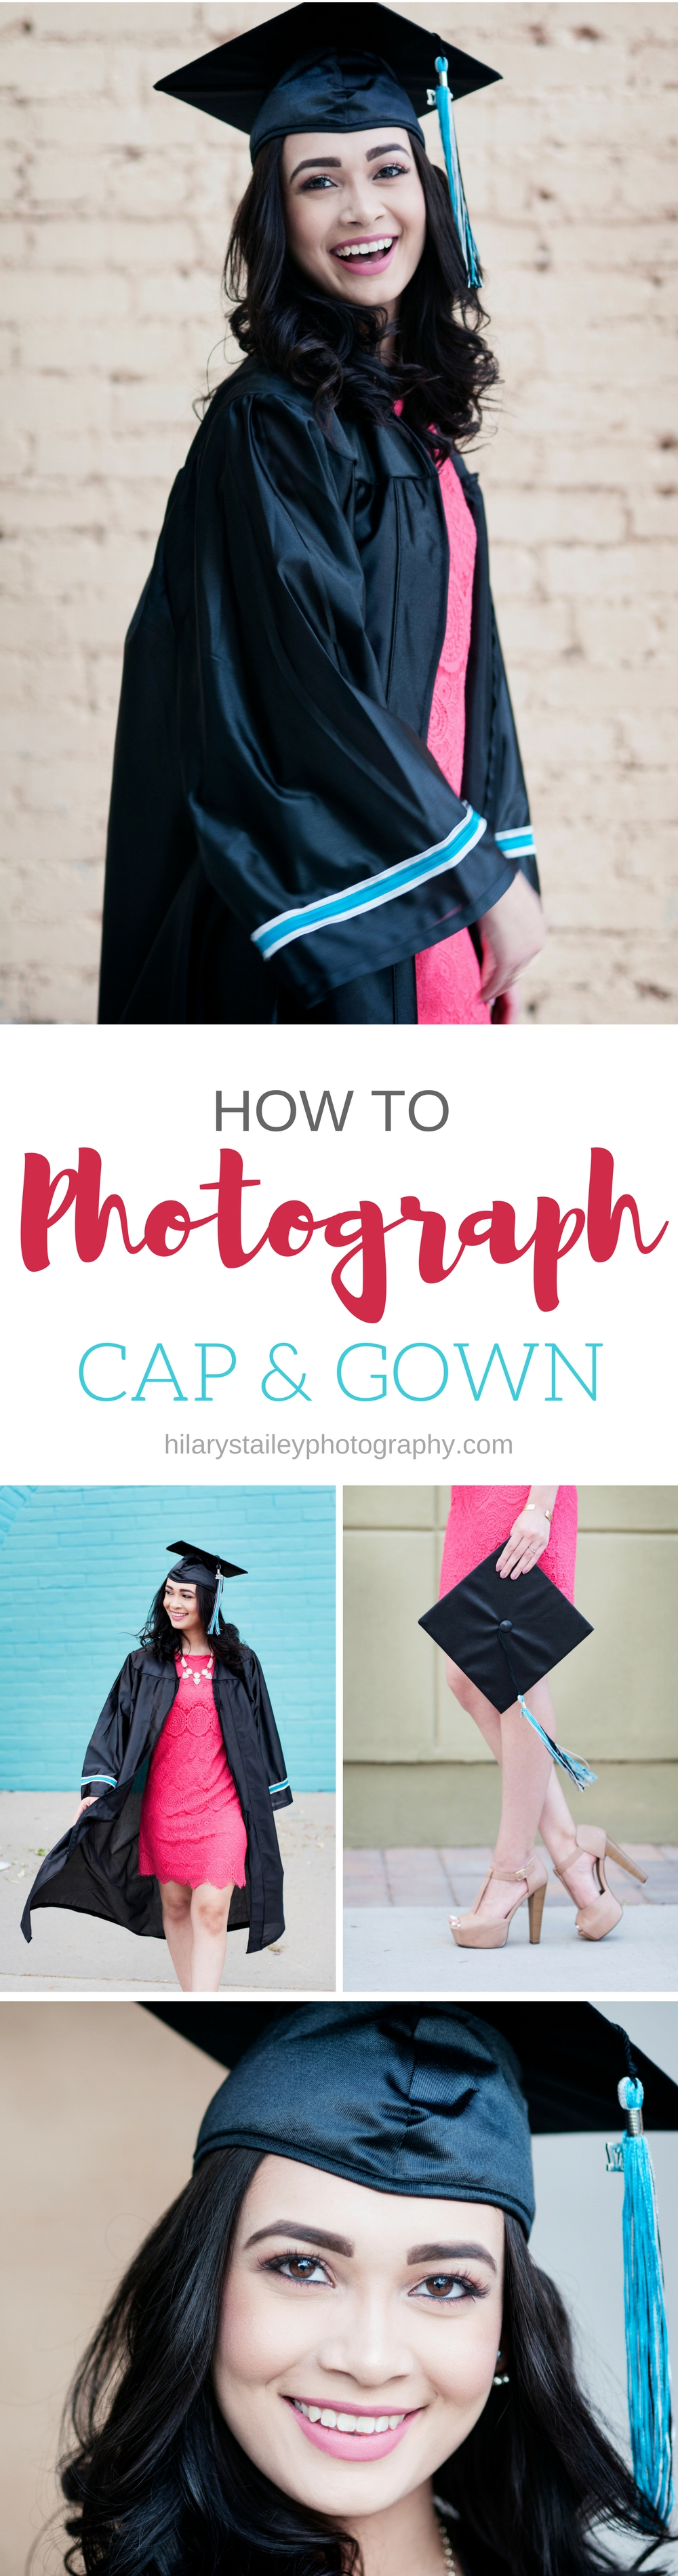 How to Photograph Cap & Gown @ www.hilarystaileyphotography.com